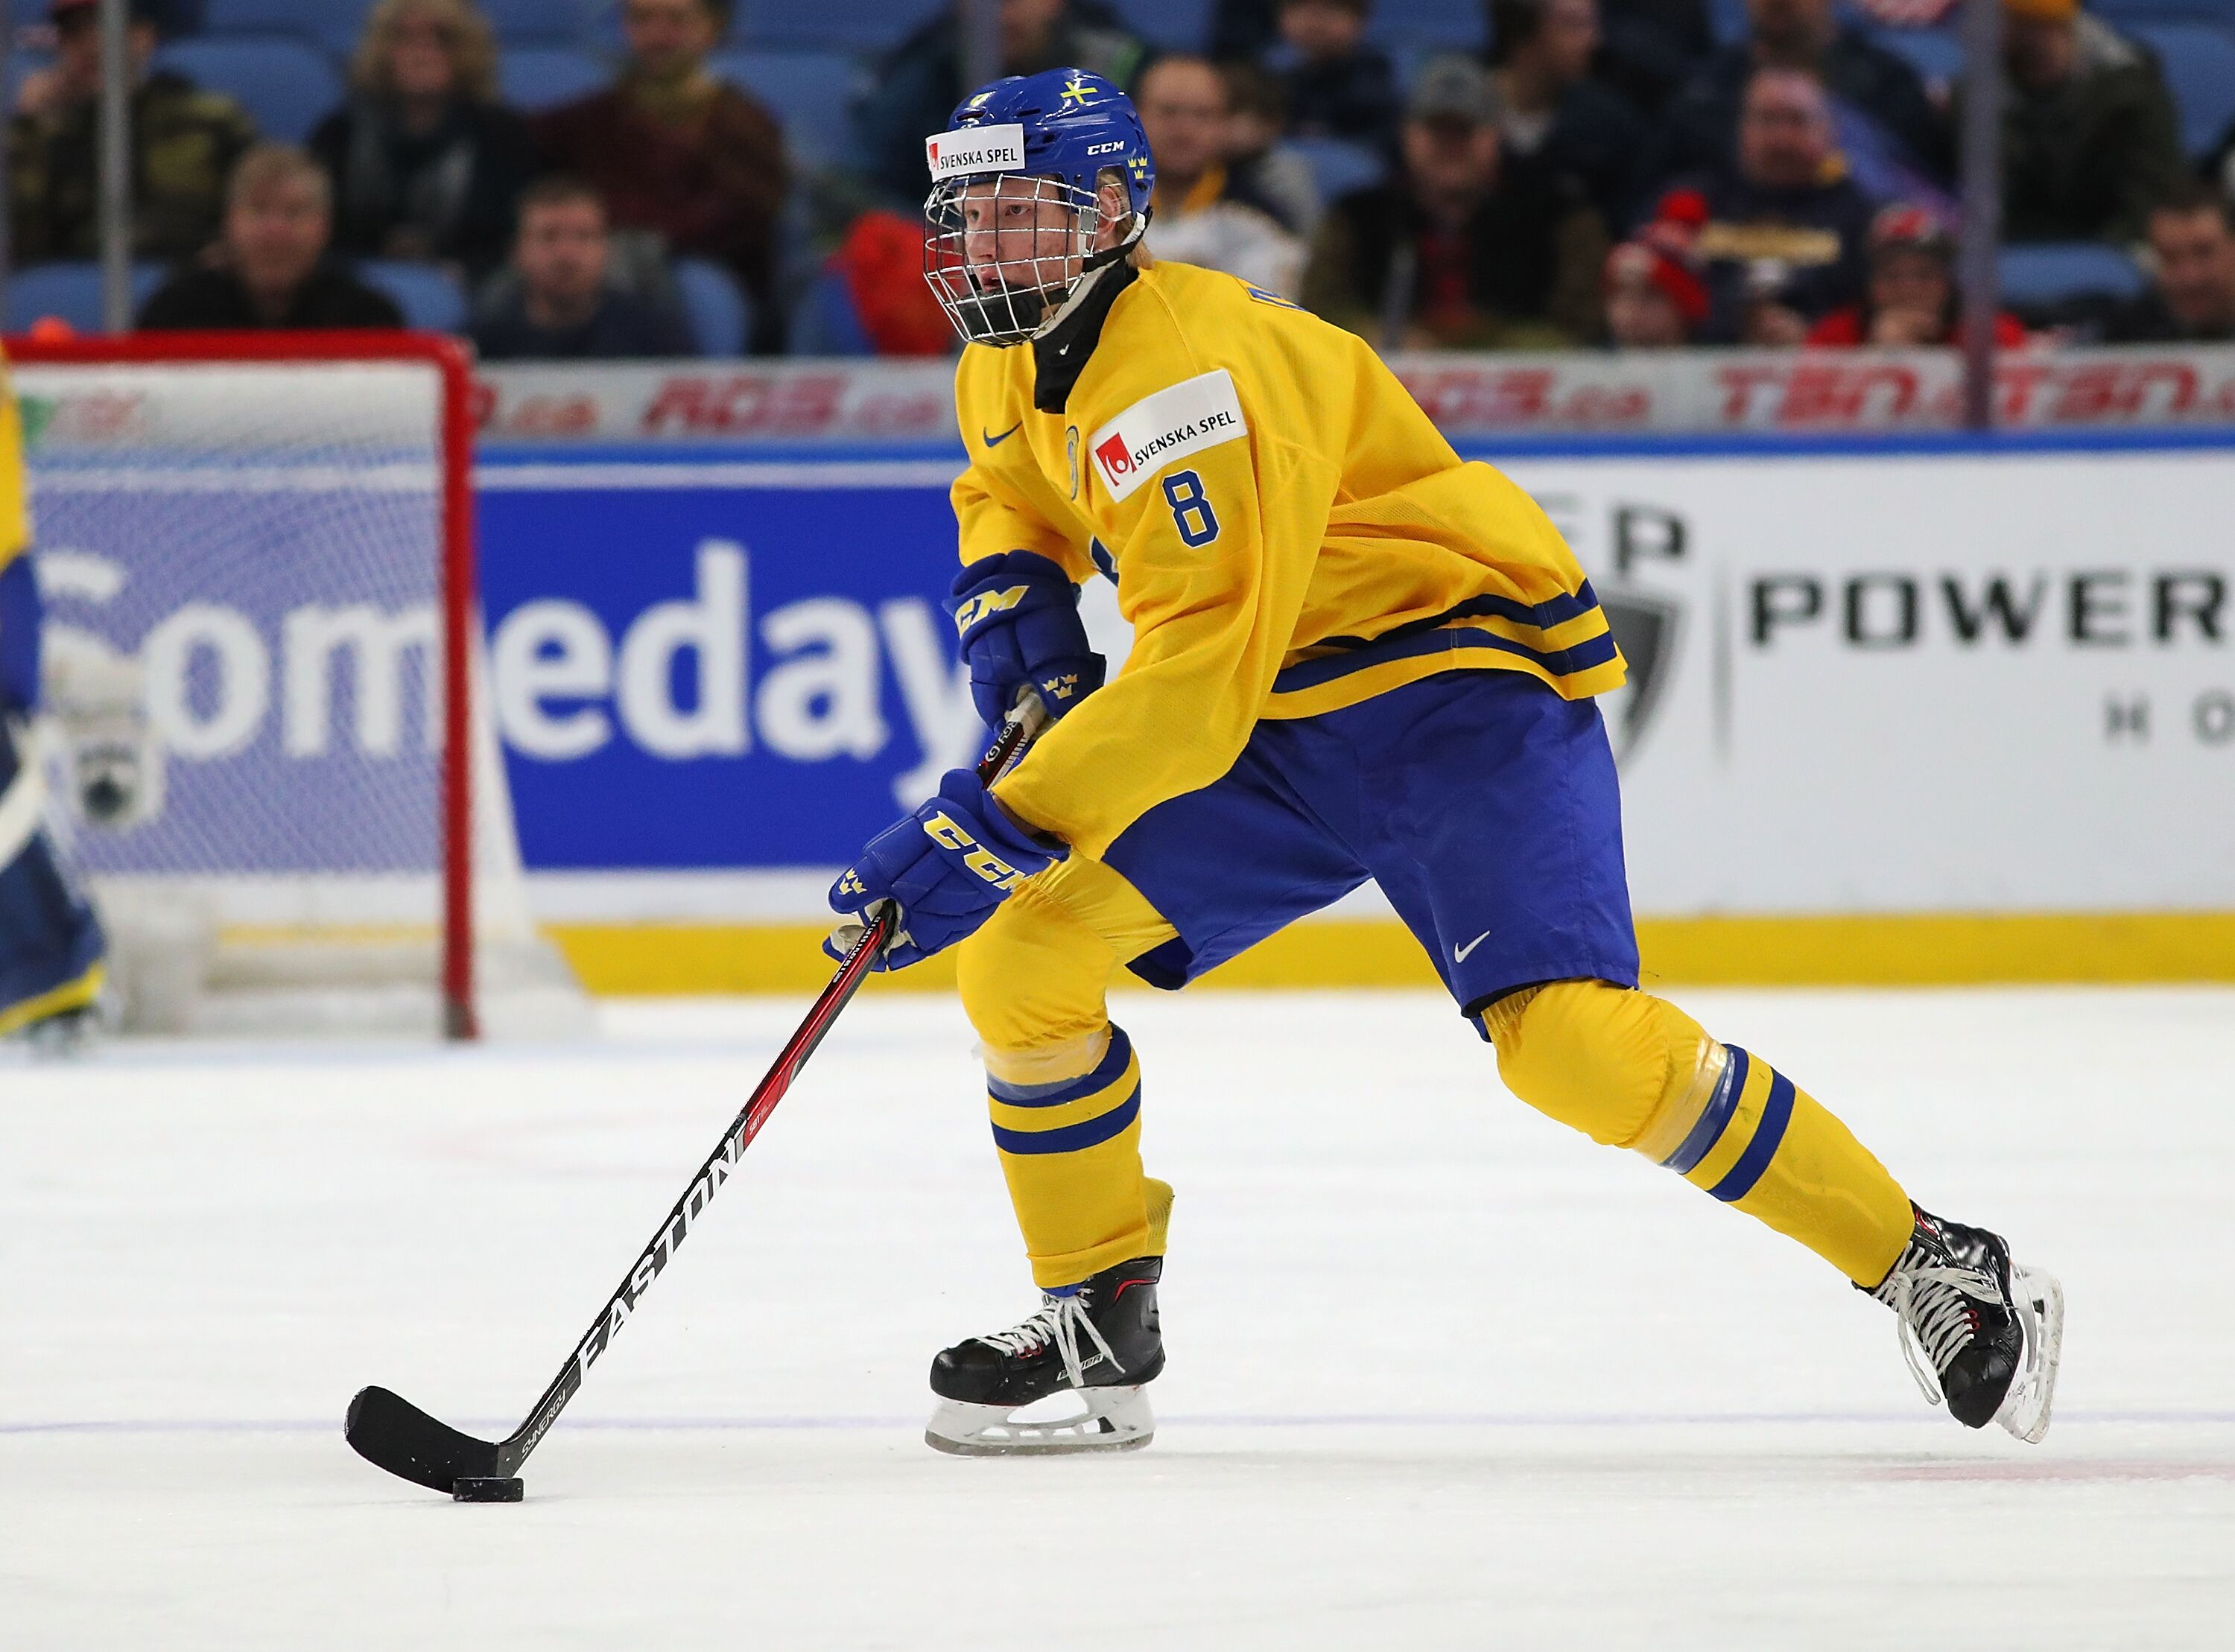 902332080-united-states-v-sweden-semifinals-2018-iihf-world-junior-championship.jpg